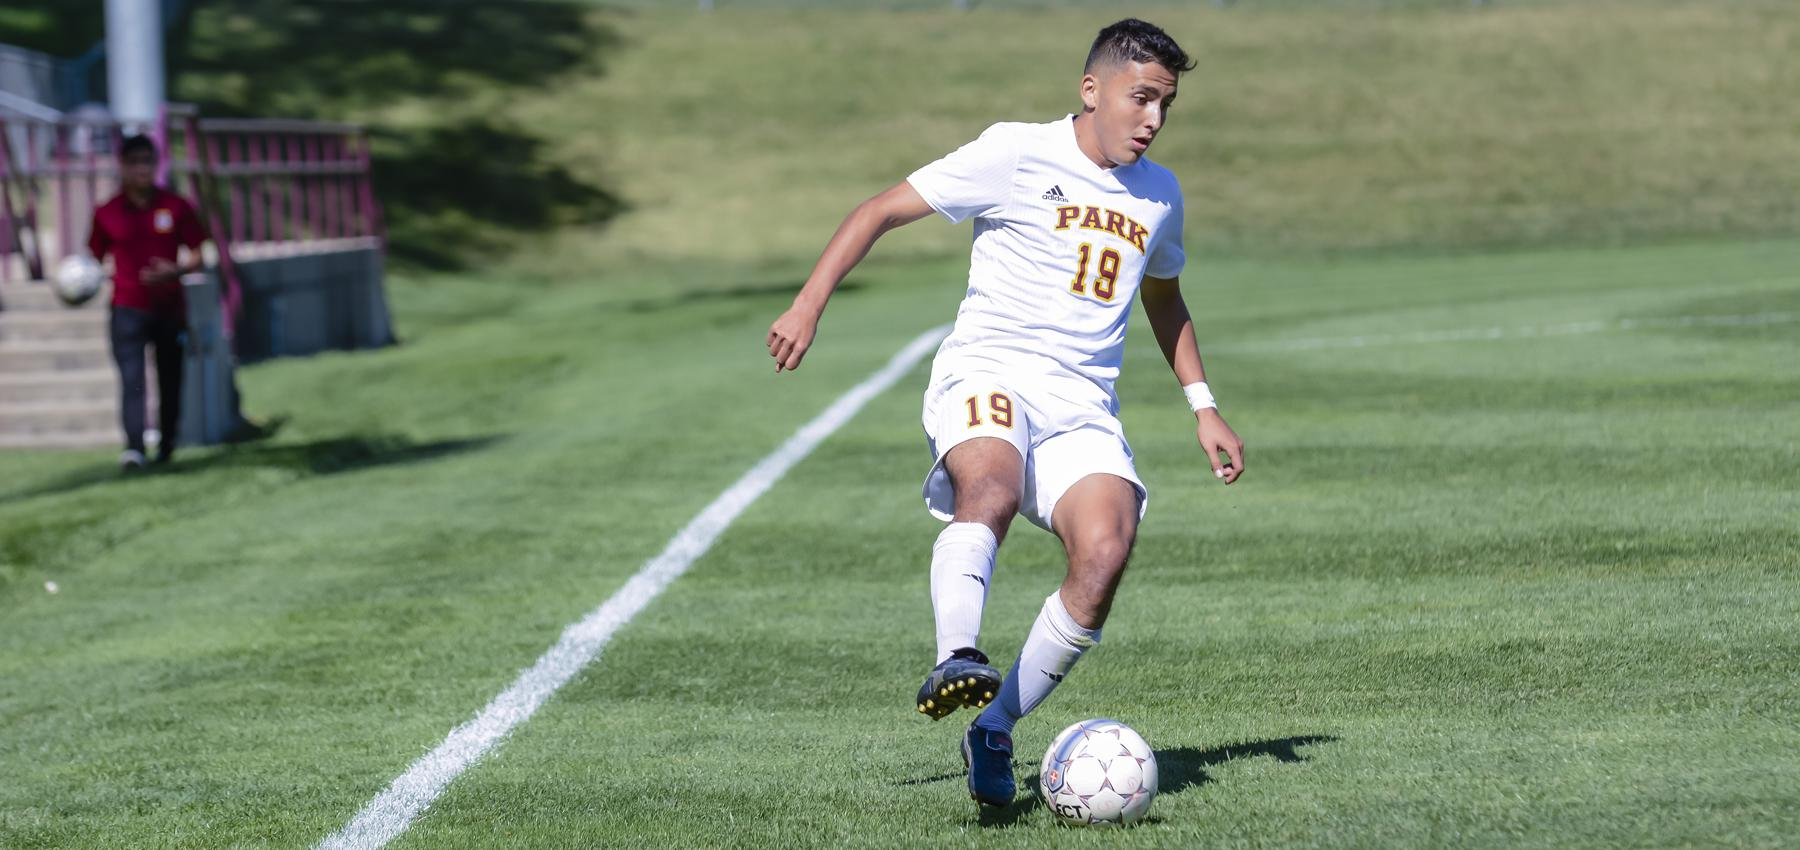 Men's Soccer Notebook: Park Opens Road Trip at Lyon